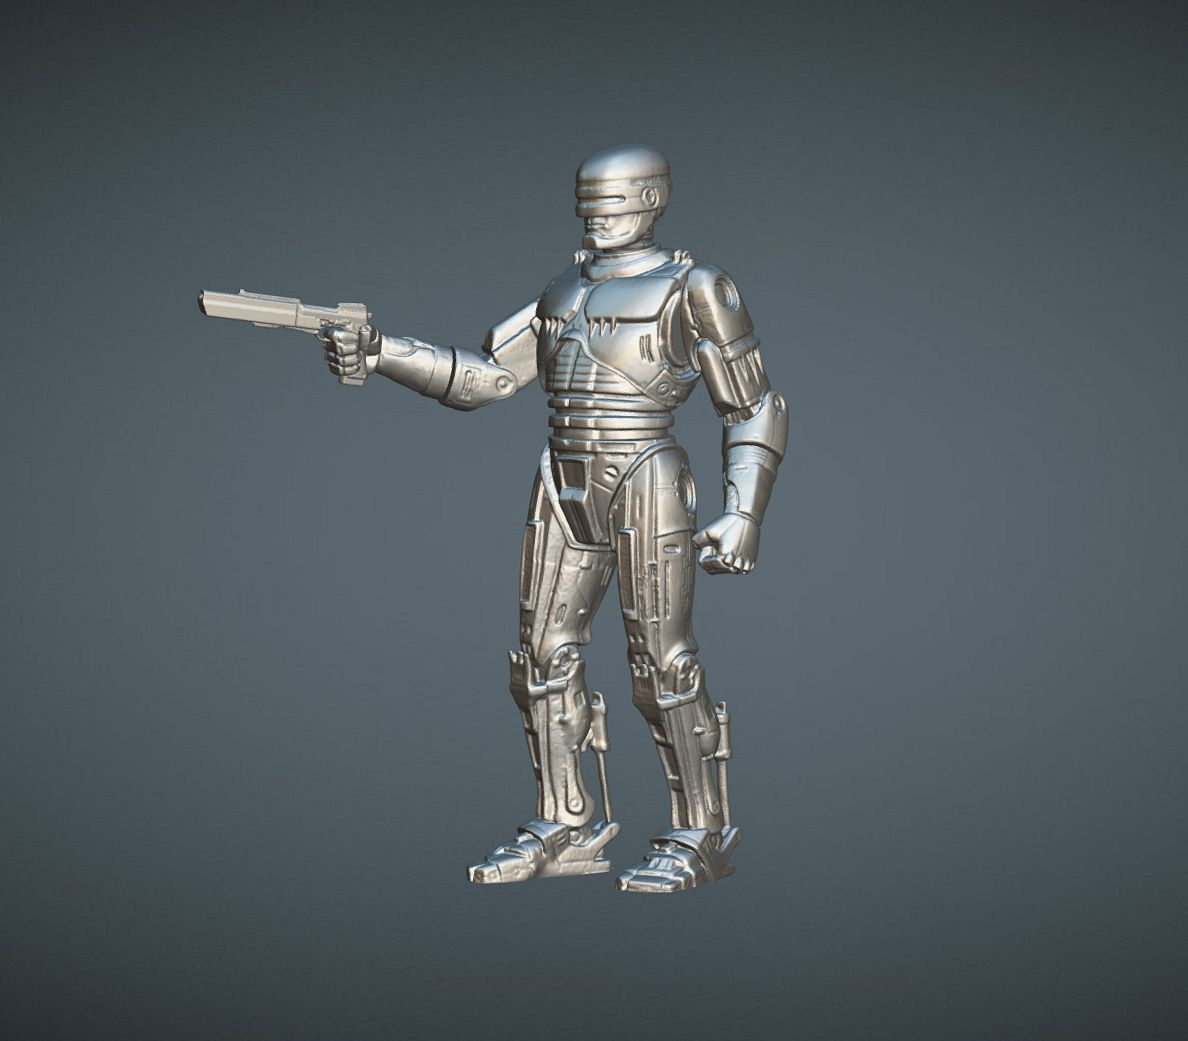 CAPTURE_007.jpg Download STL file ROBOCOP INSPIRITED FIGURE • Design to 3D print, Masterclip